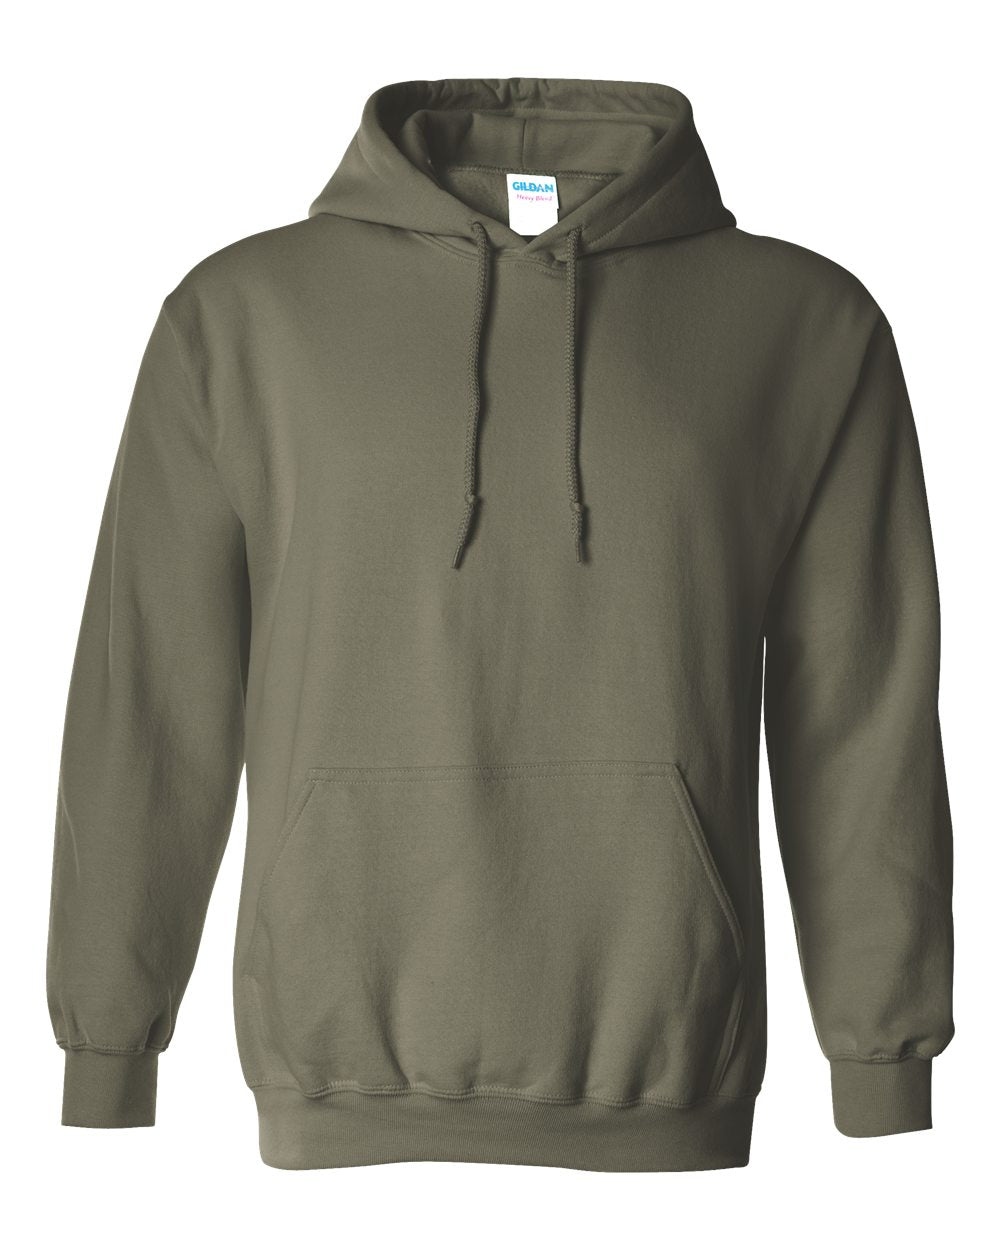 Gildan Hooded Sweatshirt, Heavy Blend - $